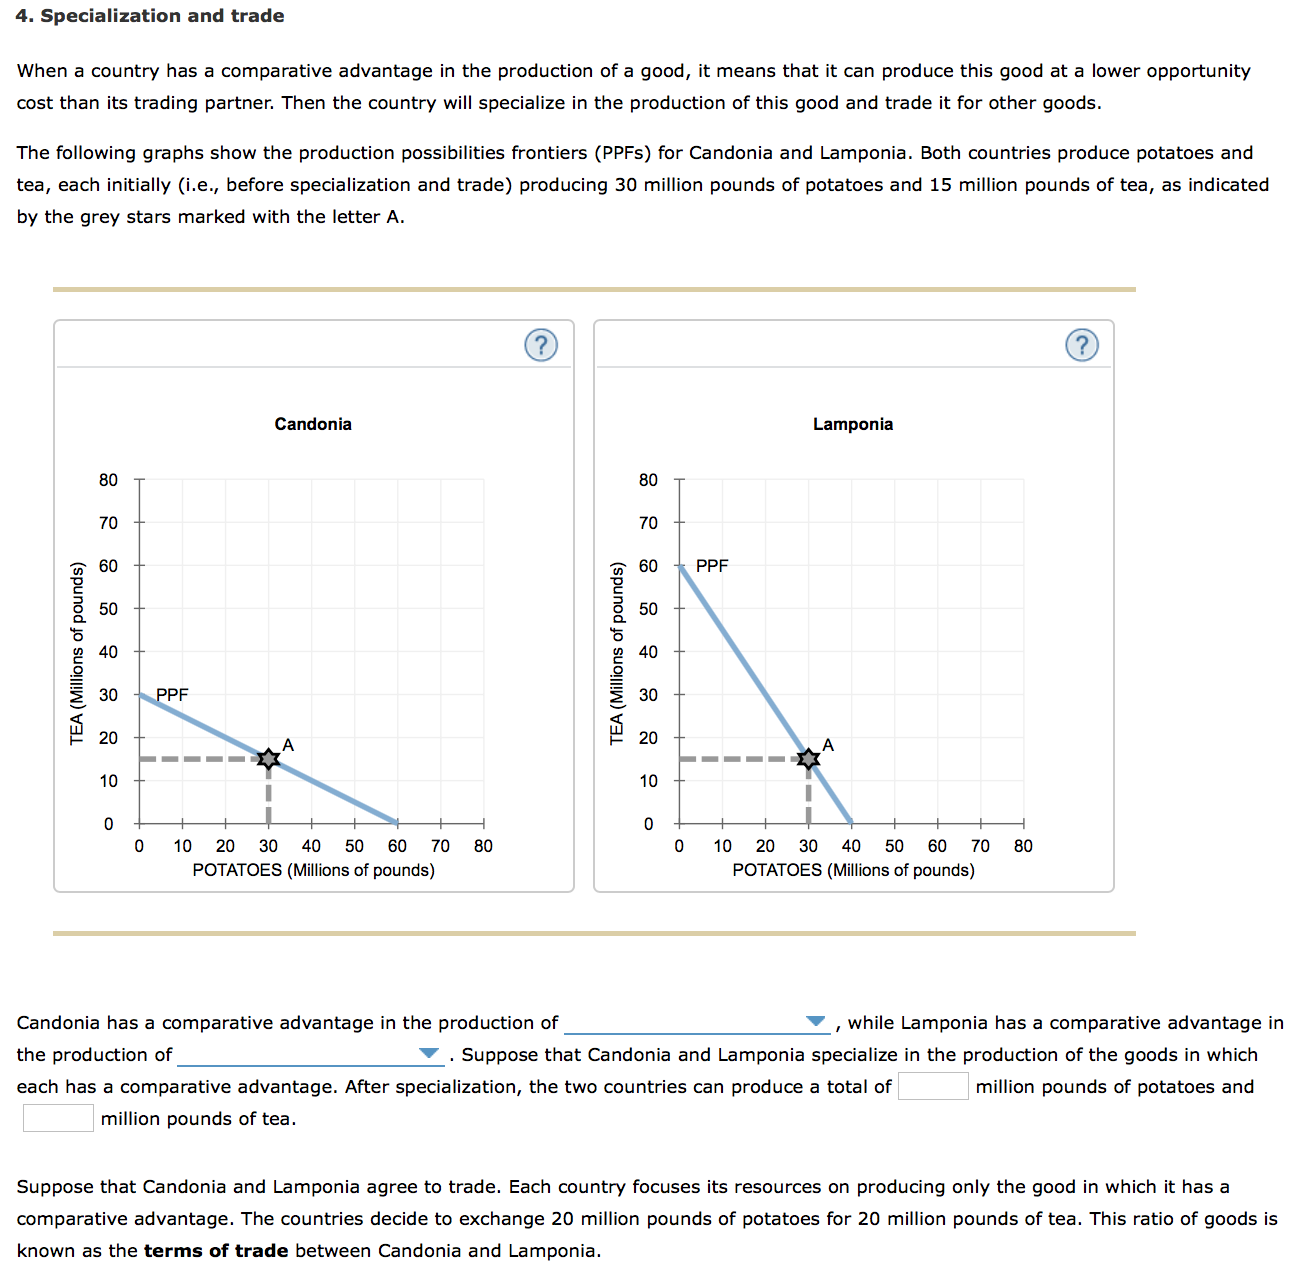 relationship between opportunity cost comparative advantage and specialization